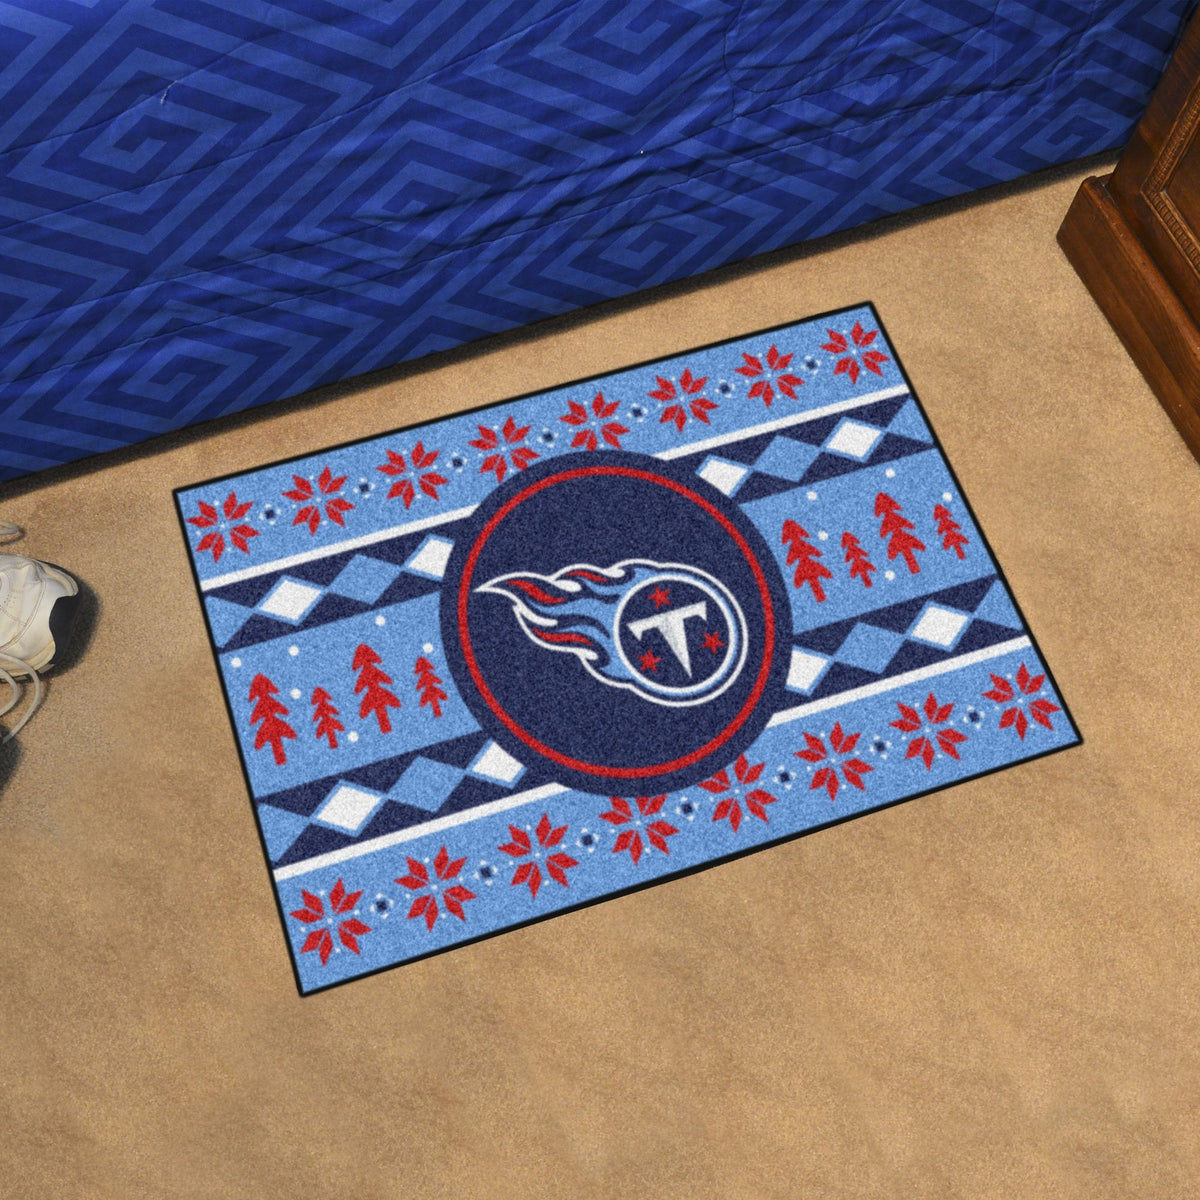 "NFL - Holiday Sweater Starter Mat, 19"" x 30"" NFL Mats, Rectangular Mats, Holiday Sweater Starter Mat, NFL, Home Fan Mats Tennessee Titans"